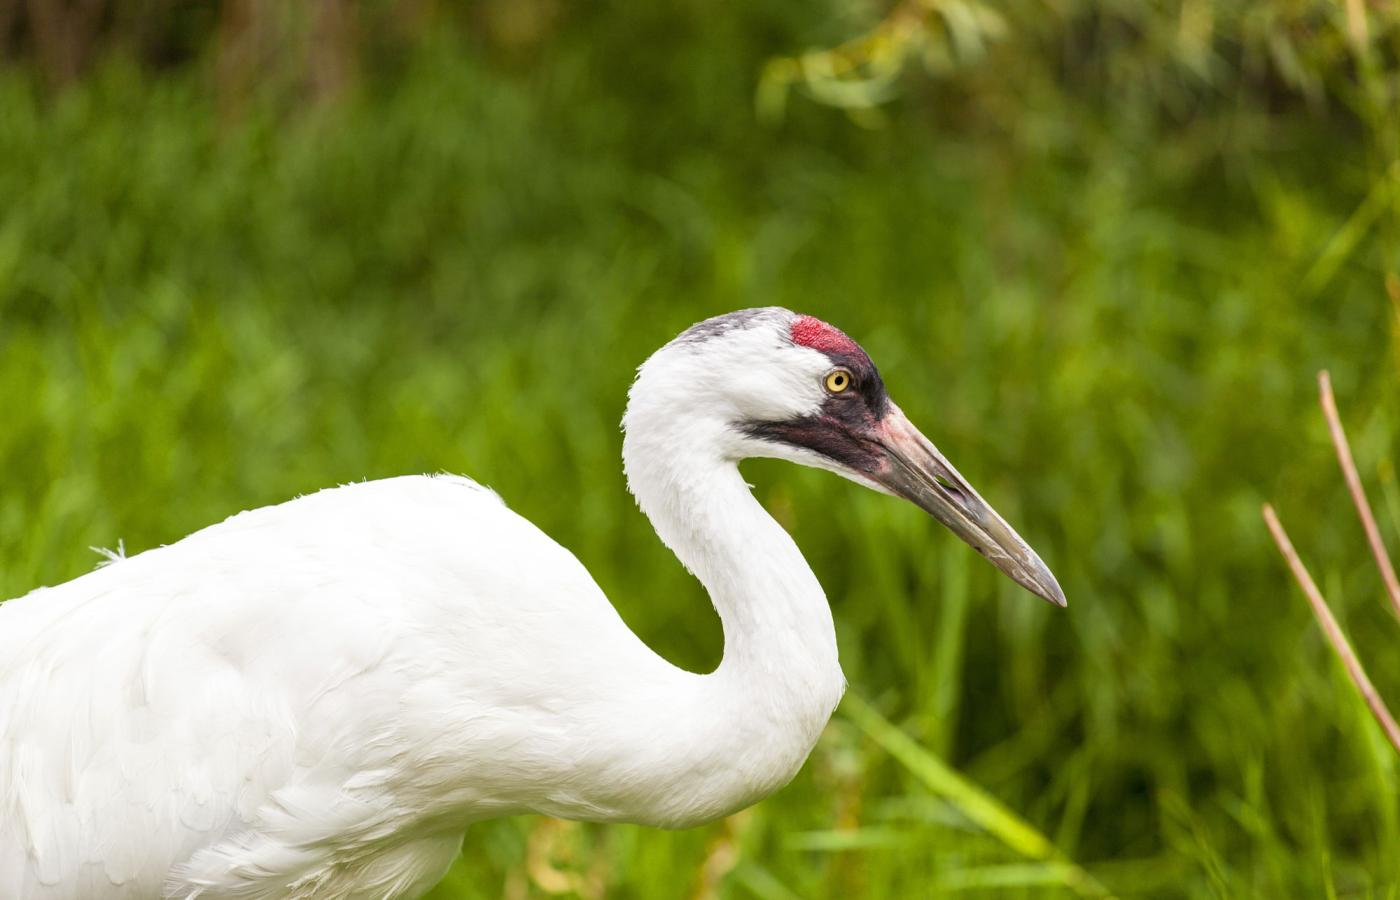 Whooping cranes are making a comeback in Wood Buffalo Park in the NWT.